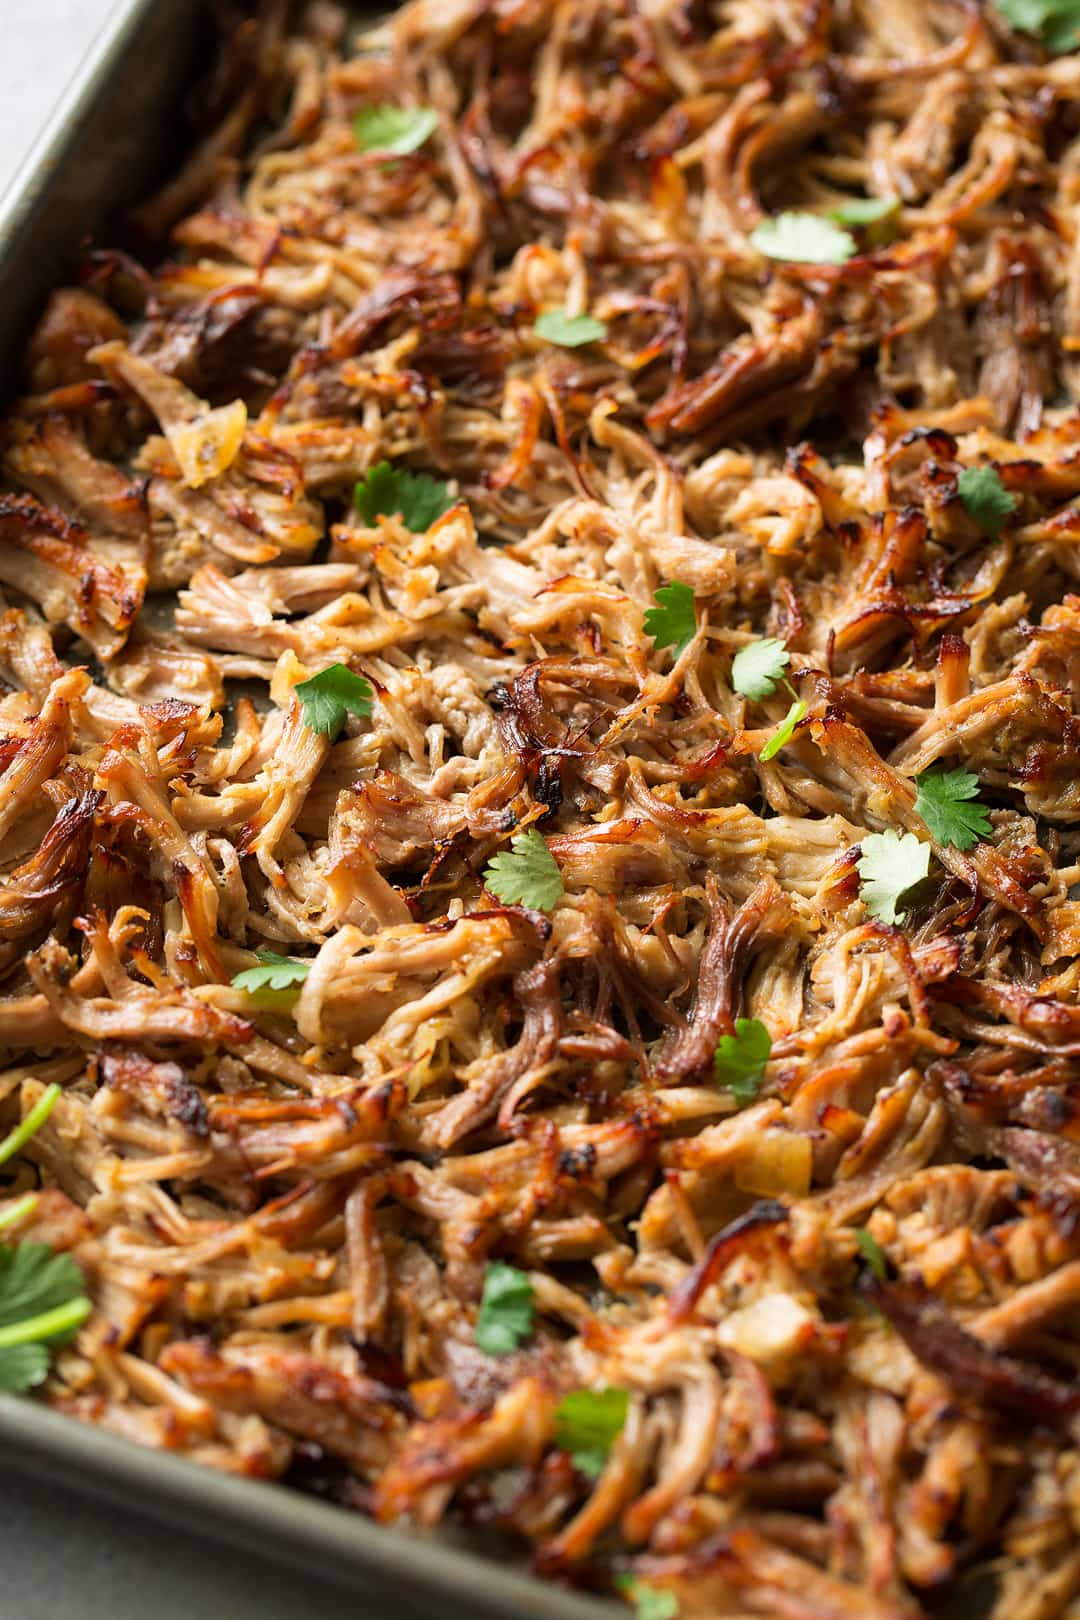 Carnitas shown here after broiling on a baking sheet